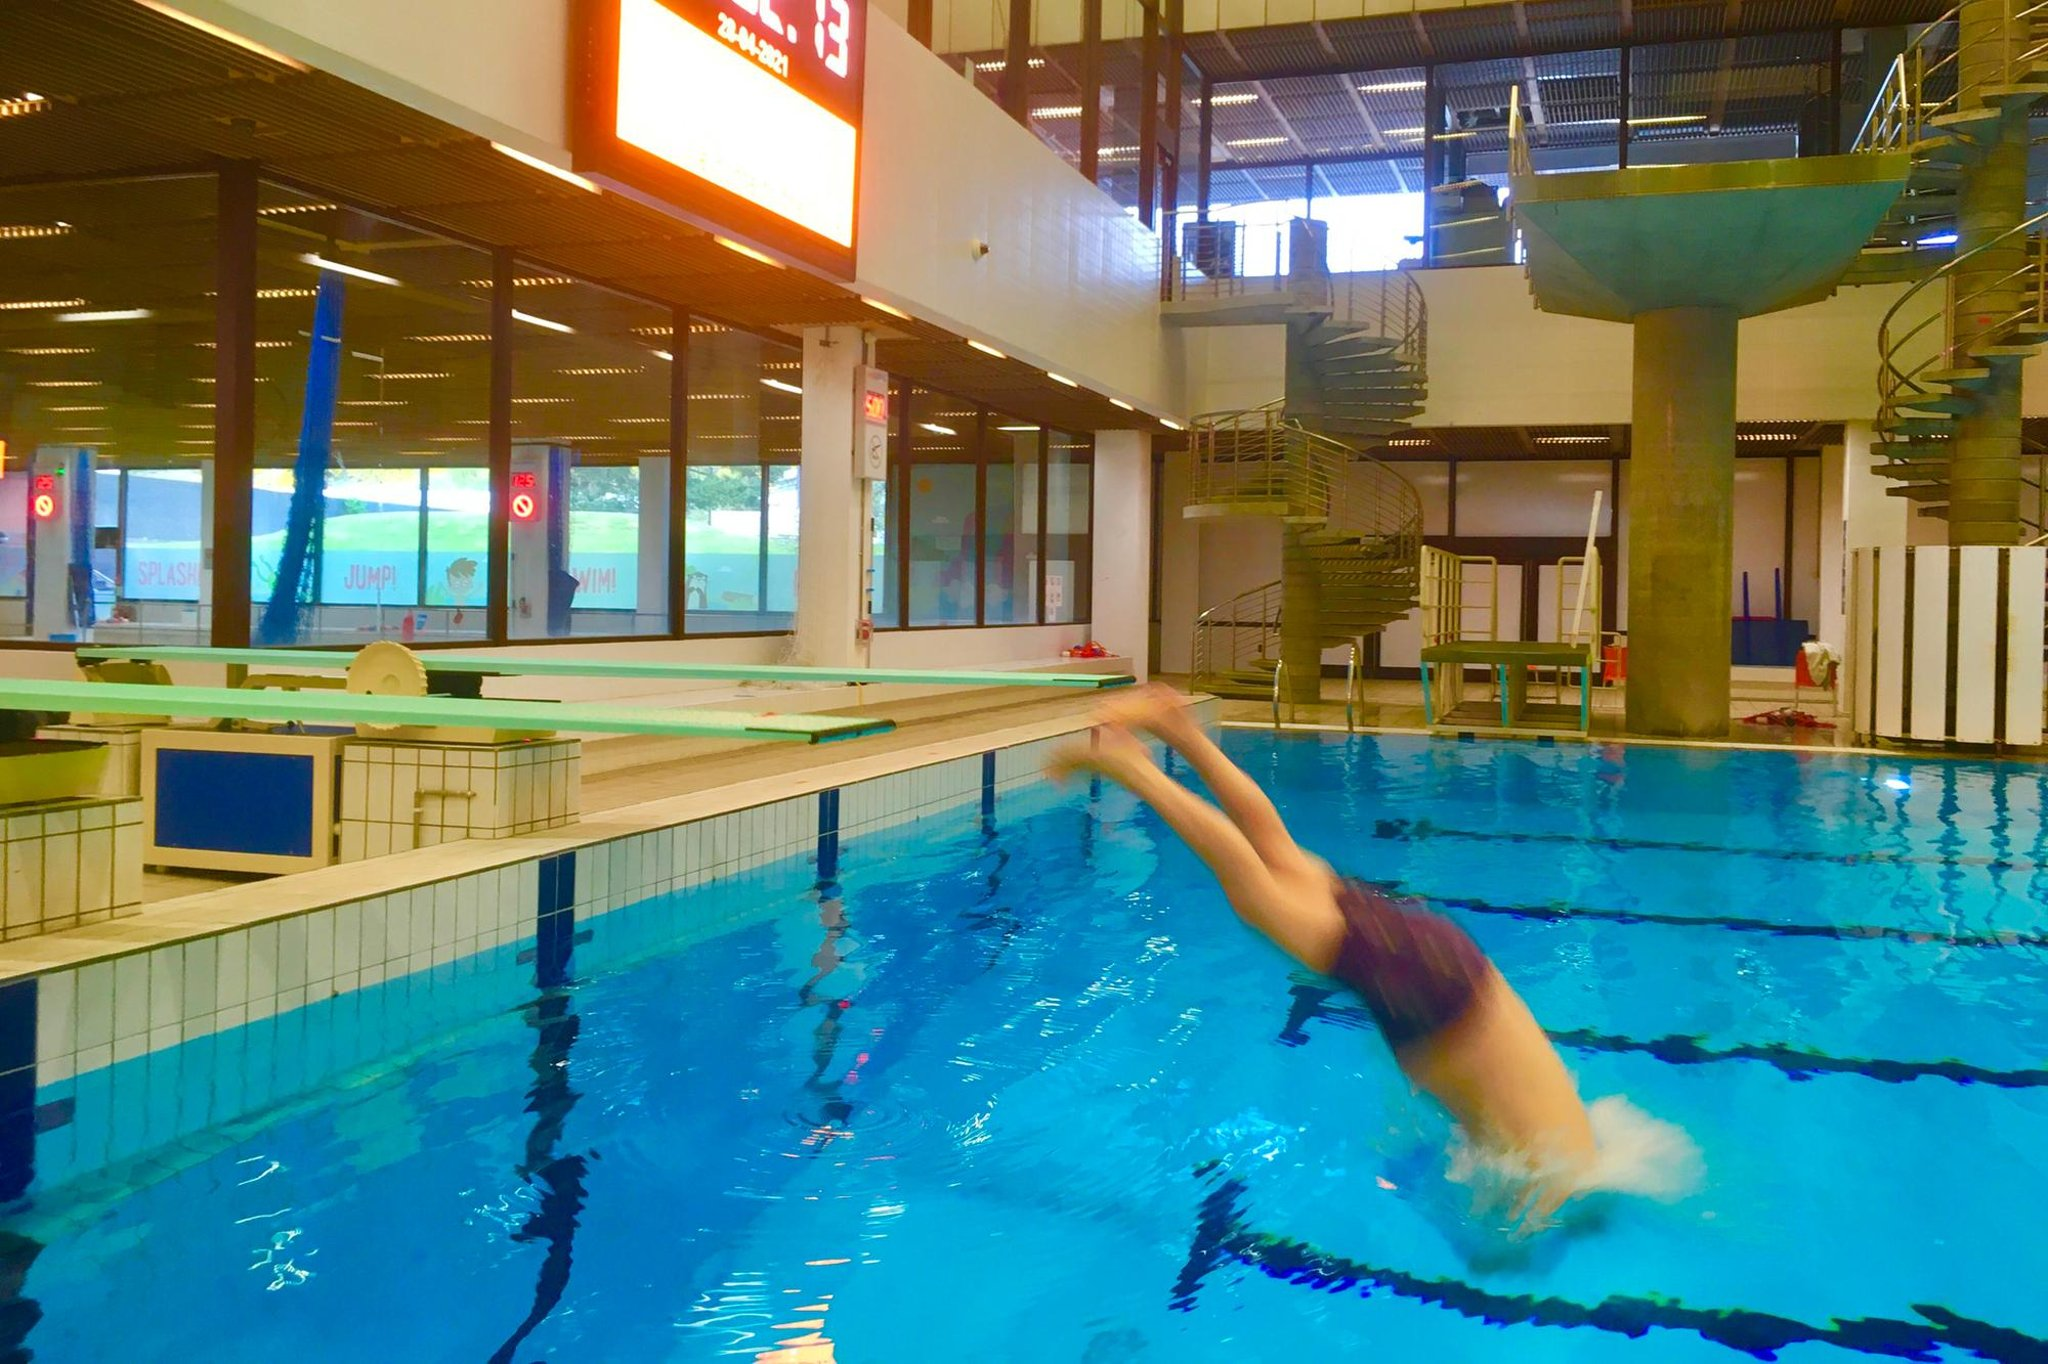 Why I've become the oldest diving student at Edinburgh's Commonwealth Pool at the age of 68 –Professor Joe Goldblatt